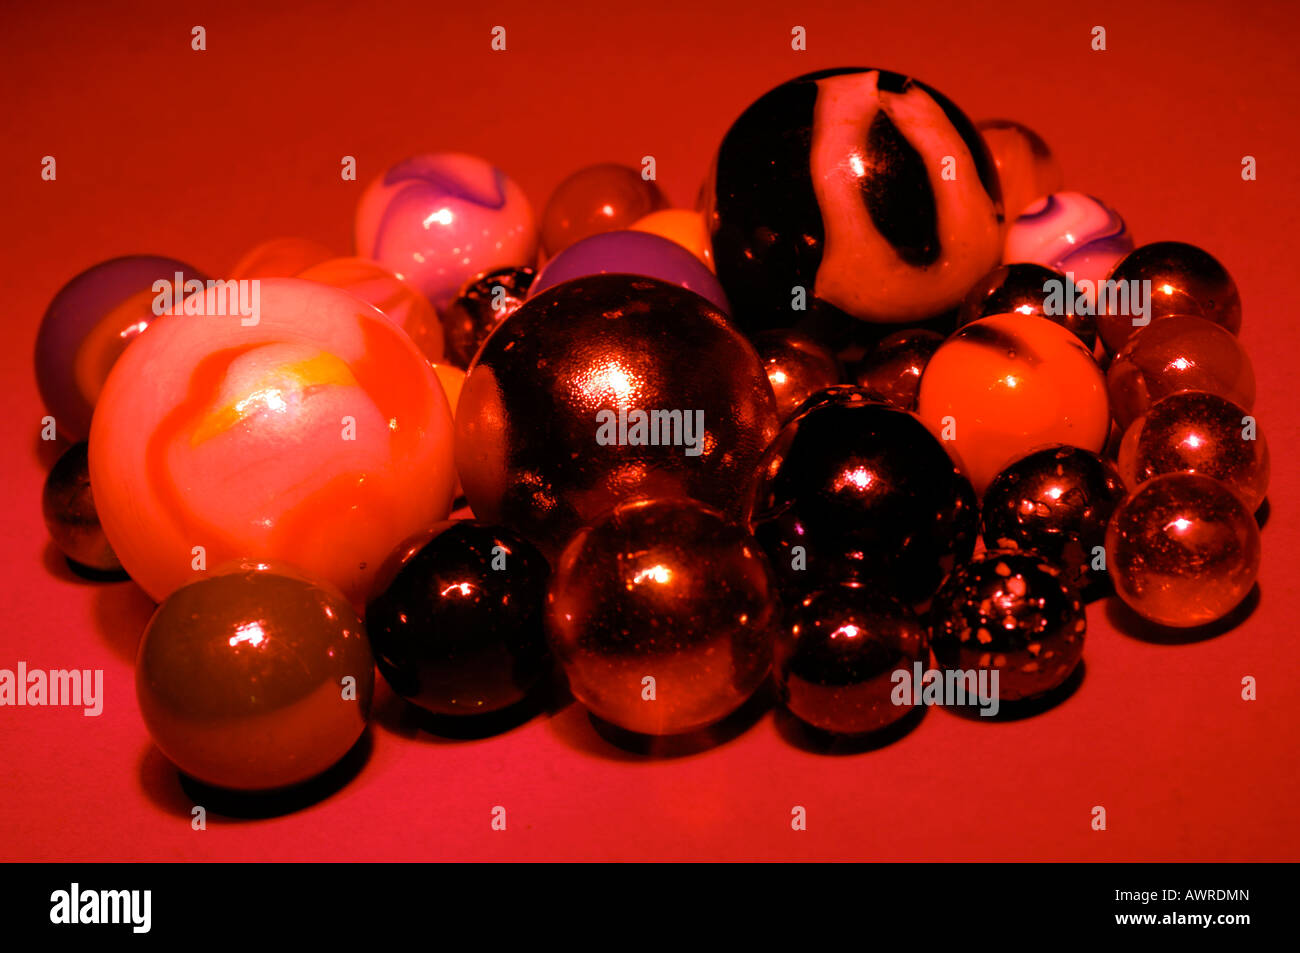 a group collection of childrens marbles on against a red background - Stock Image